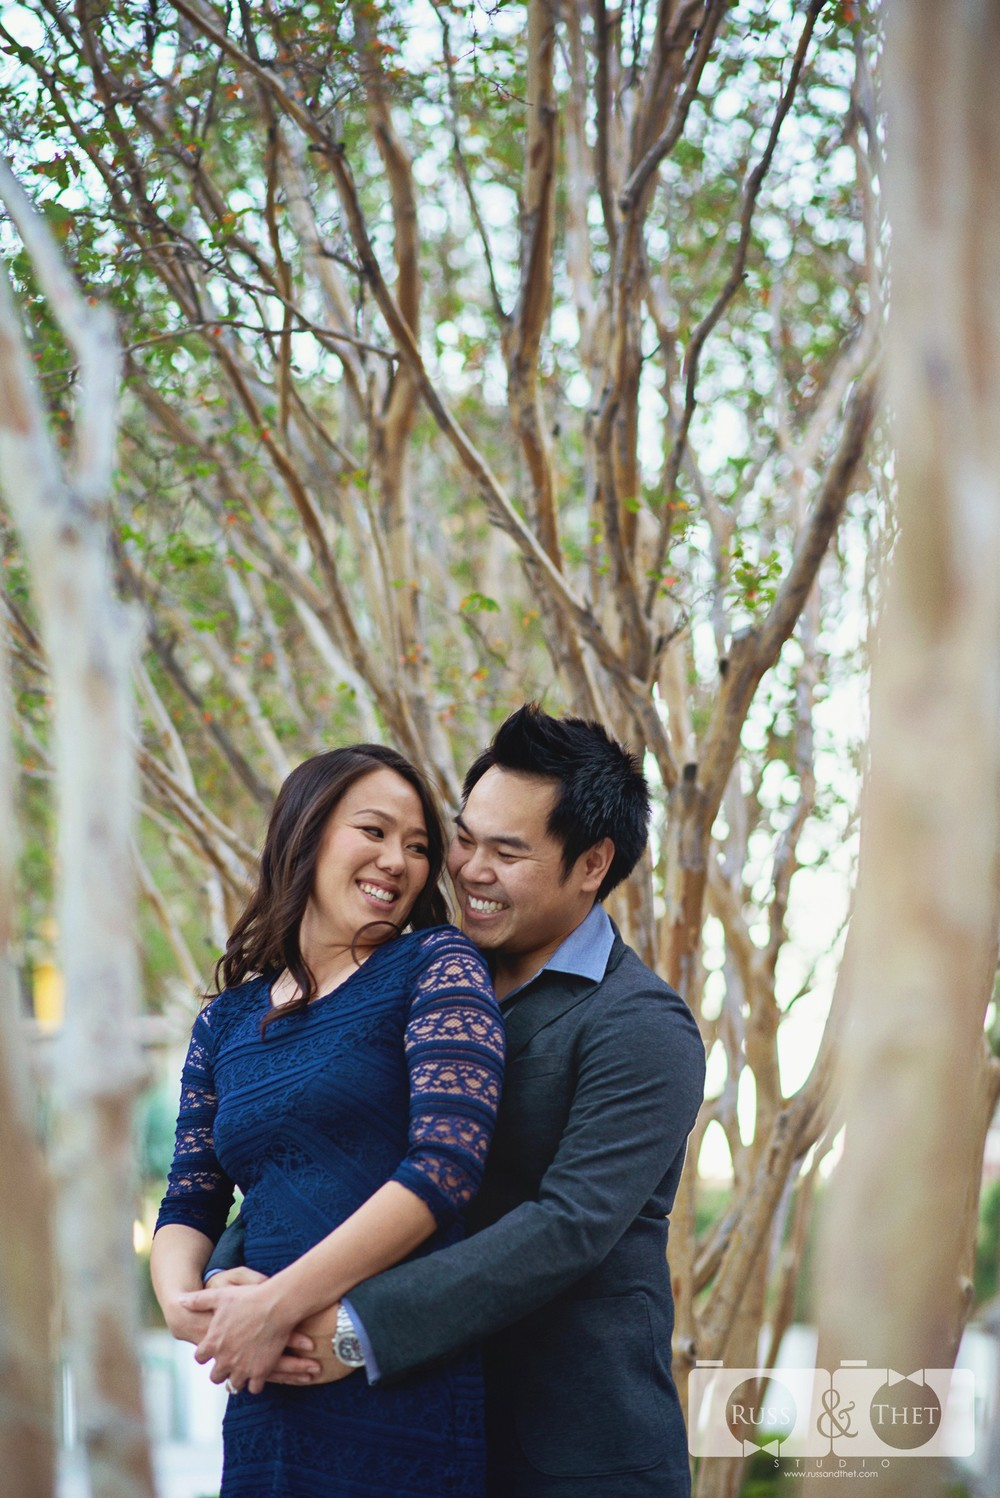 Emero_Lucinda_Downtown_Los_Angeles_Engagement_Photographer (11).jpg